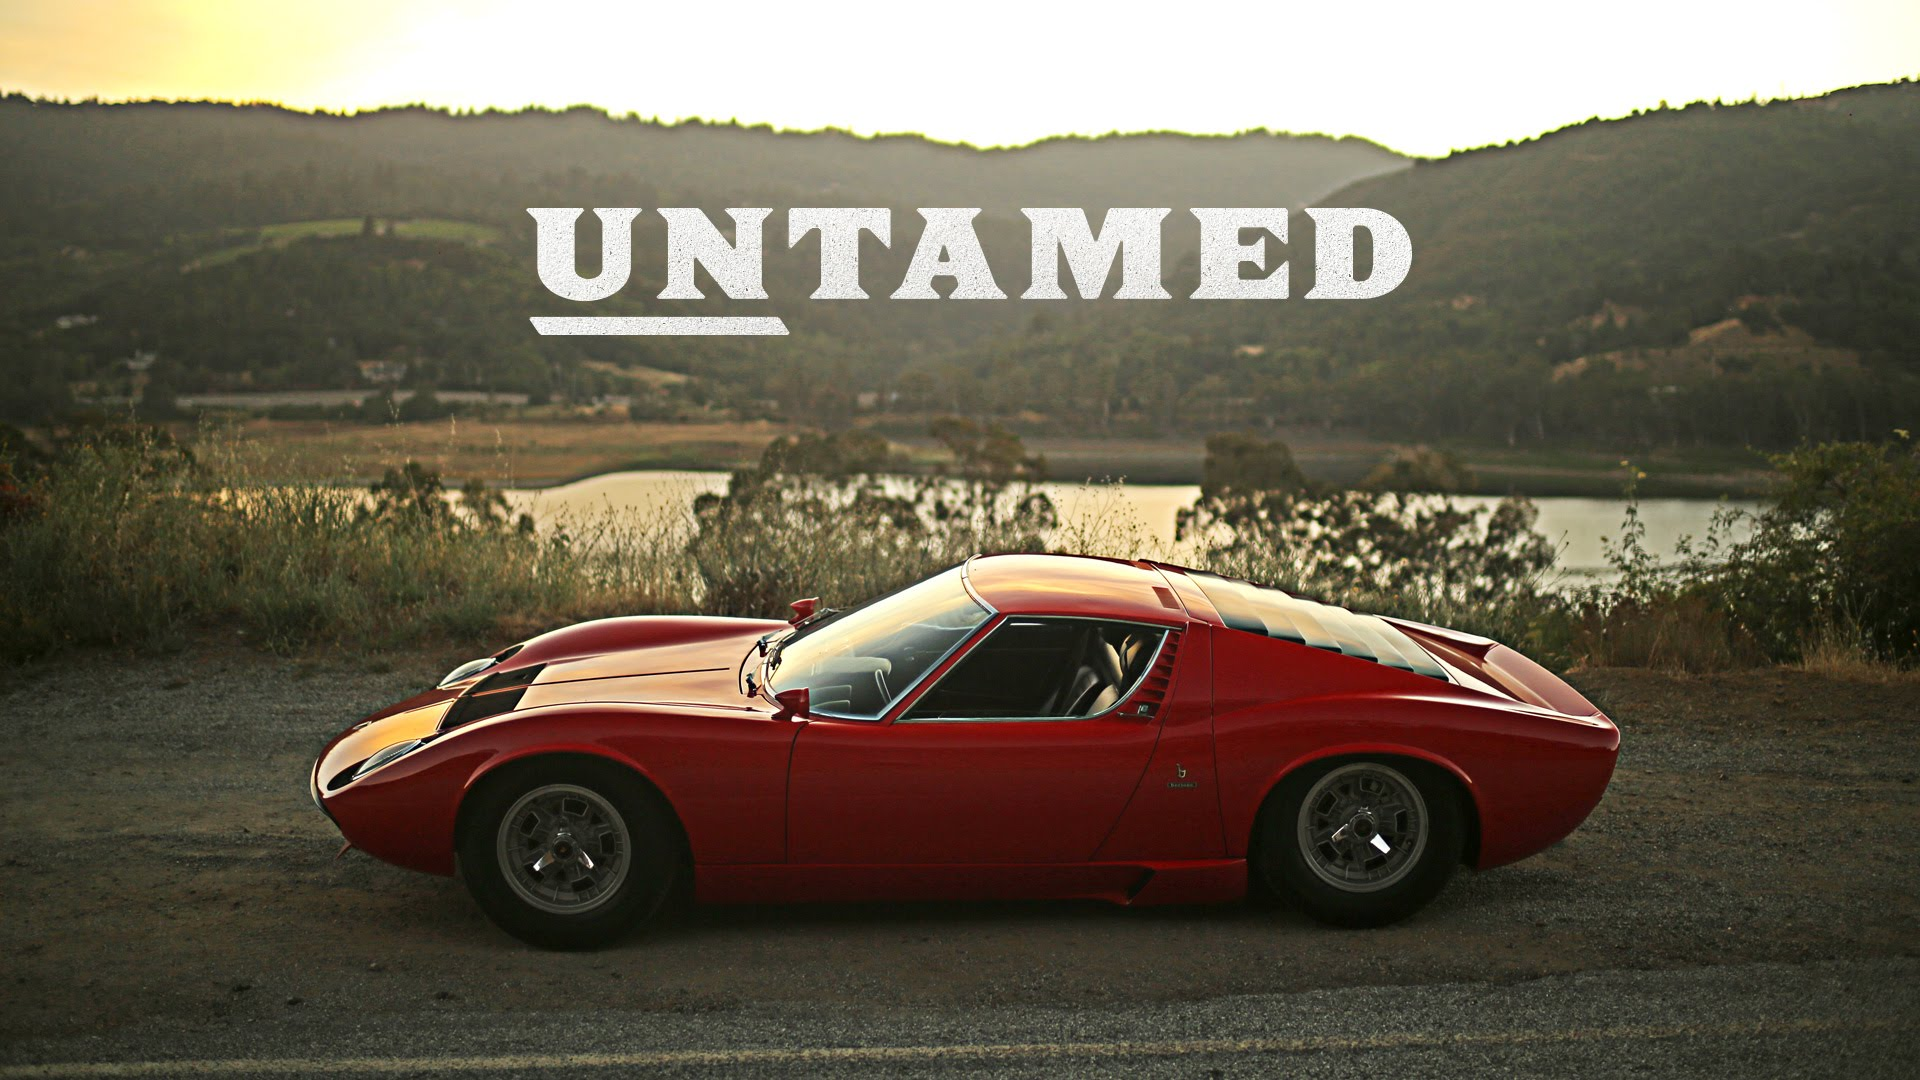 Delicieux Petrolicious: The Lamborghini Miura Is Still Untamed | HorsepowerKings.com